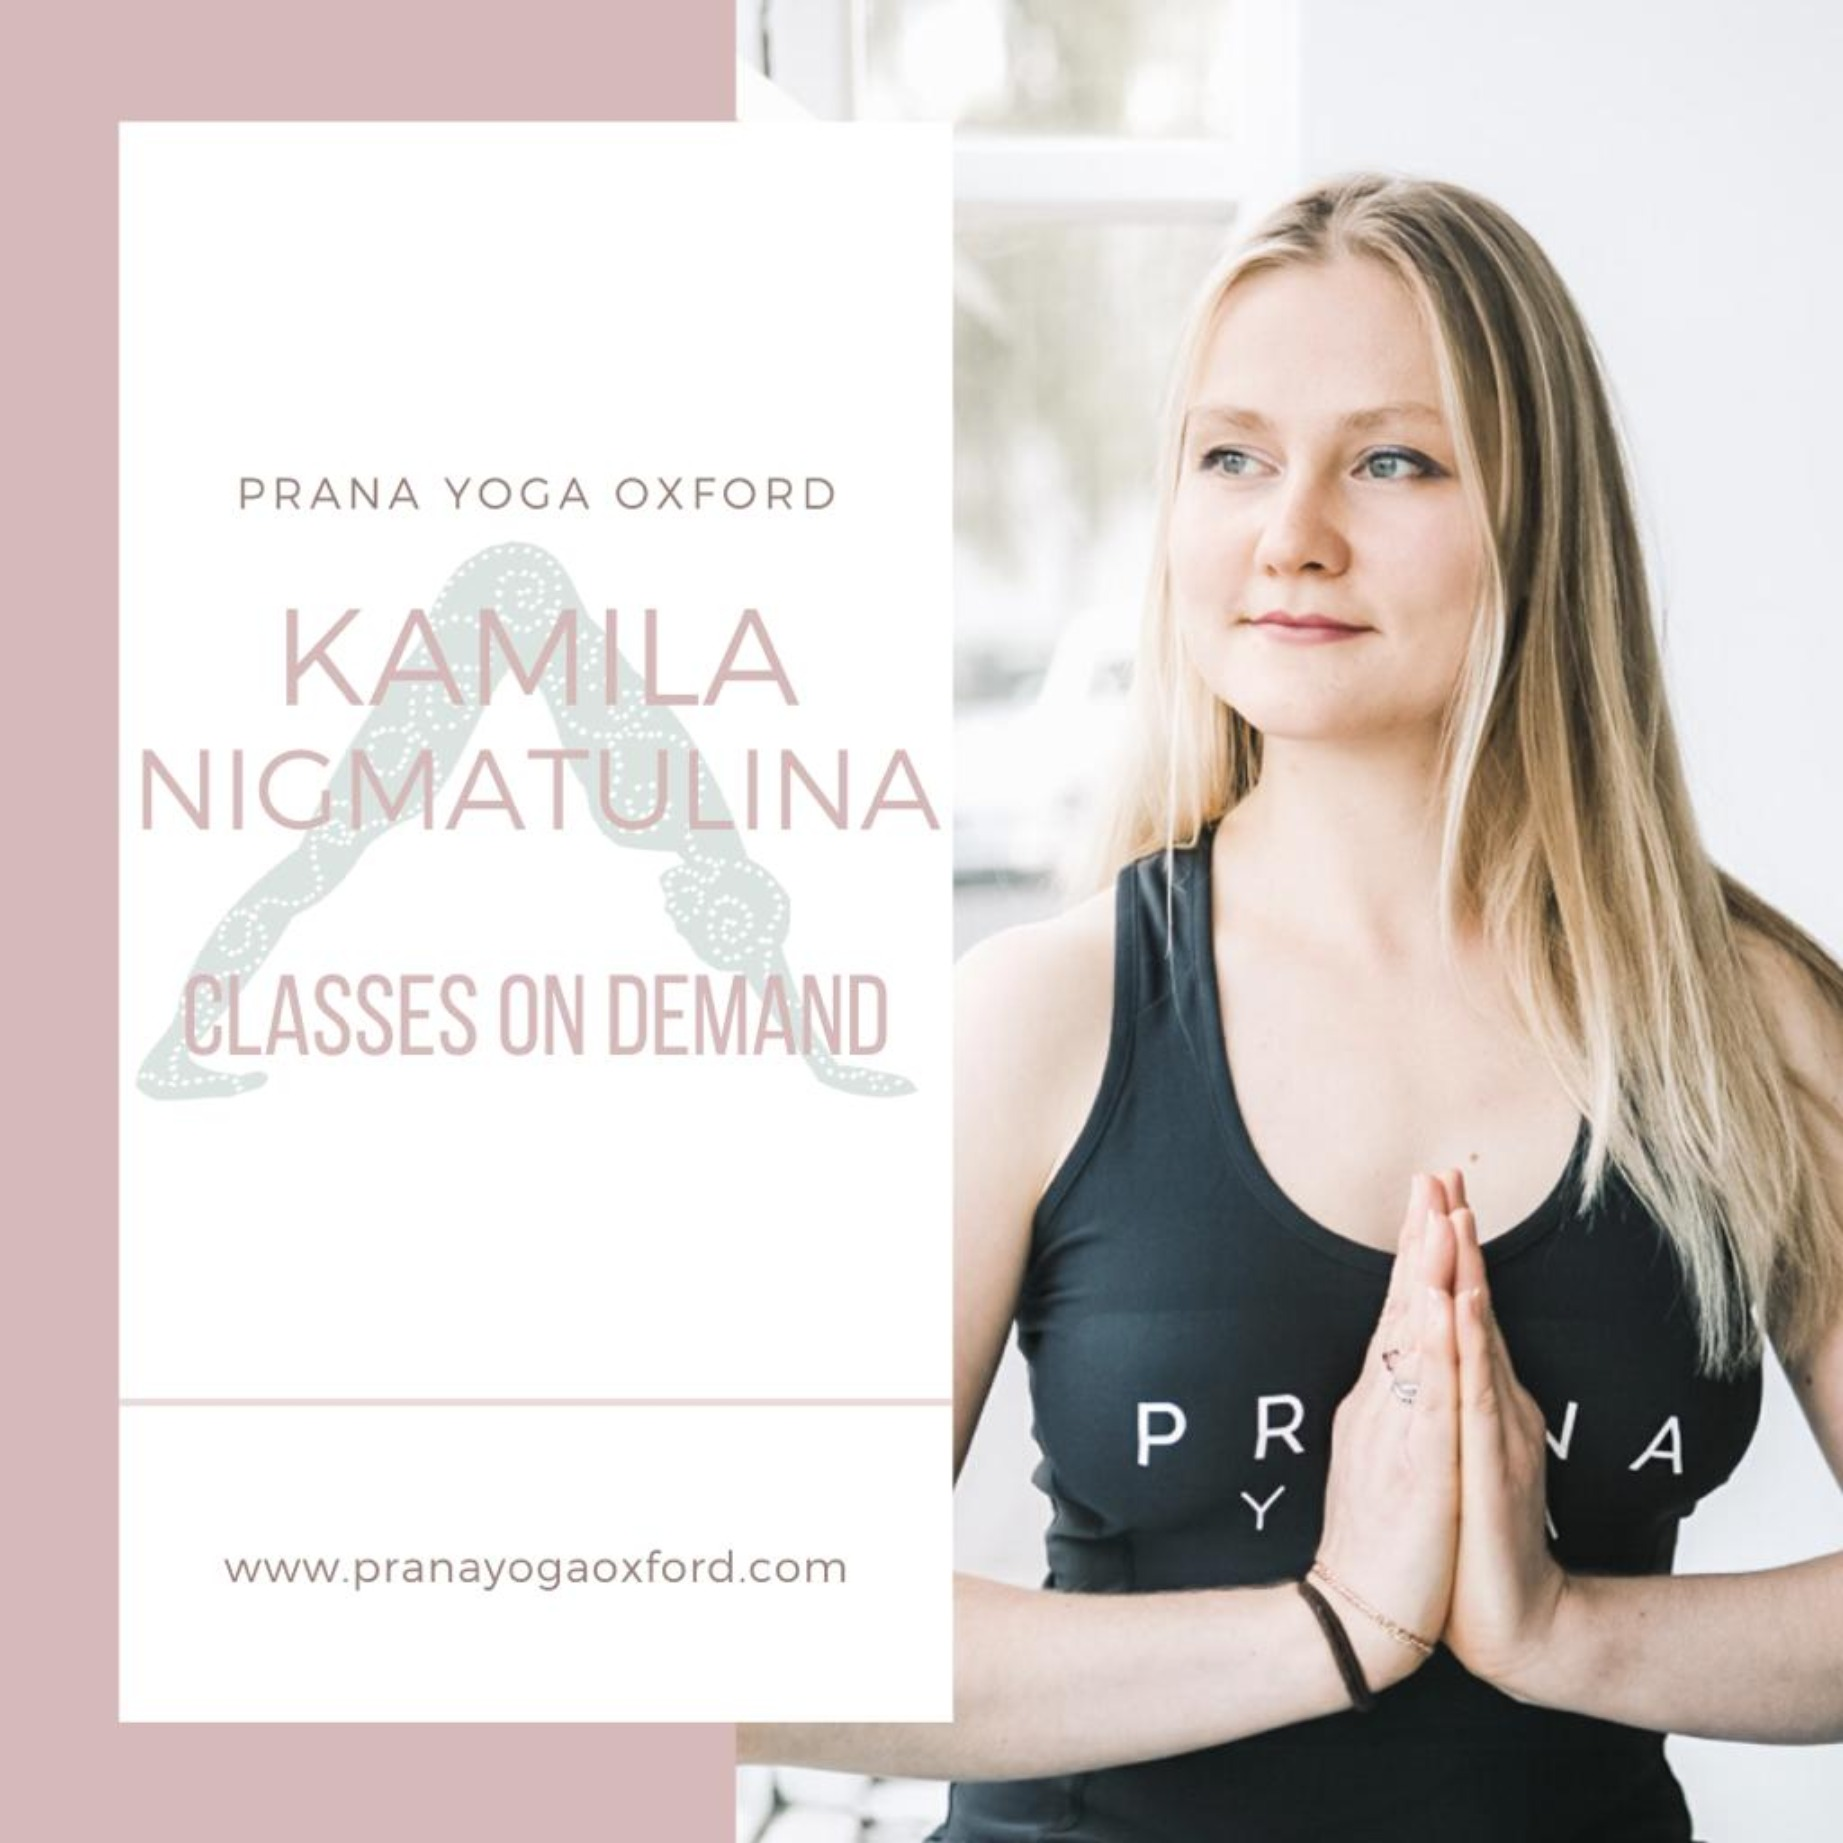 Prana Power L2 with Kamila